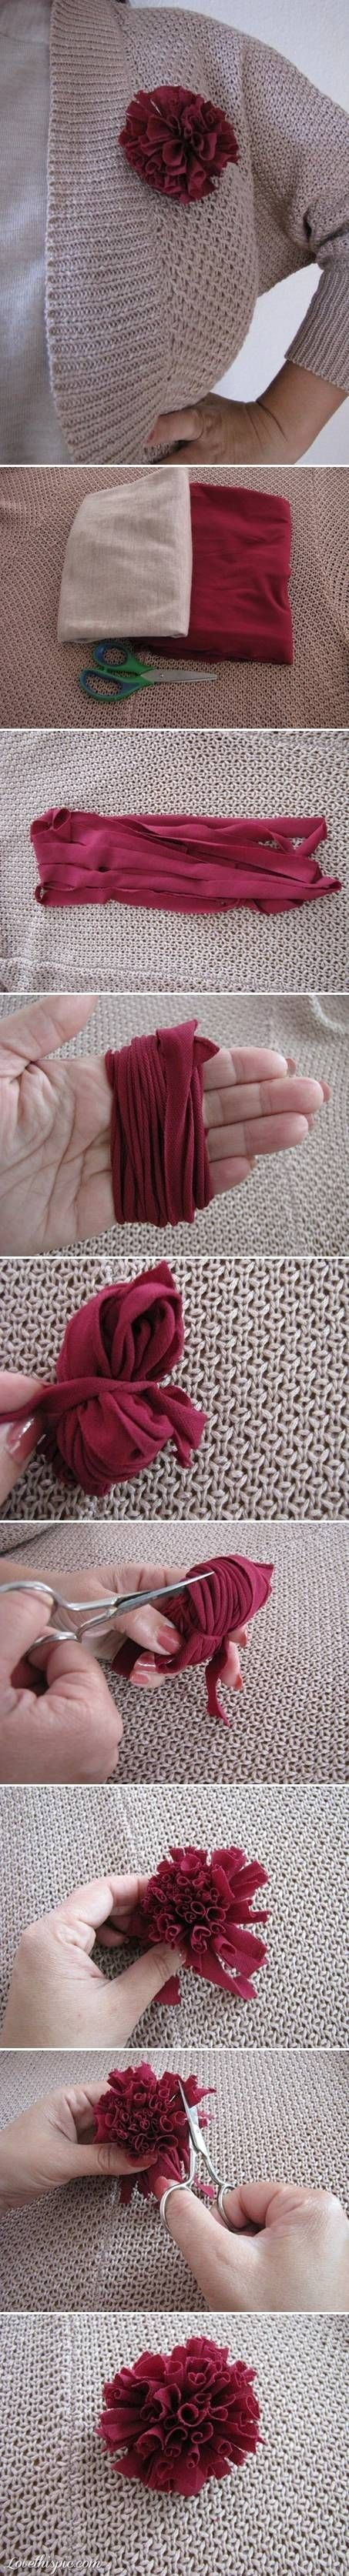 DIY Fabric Brooch Pictures, Photos, and Images for Facebook, Tumblr, Pinterest, and Twitter